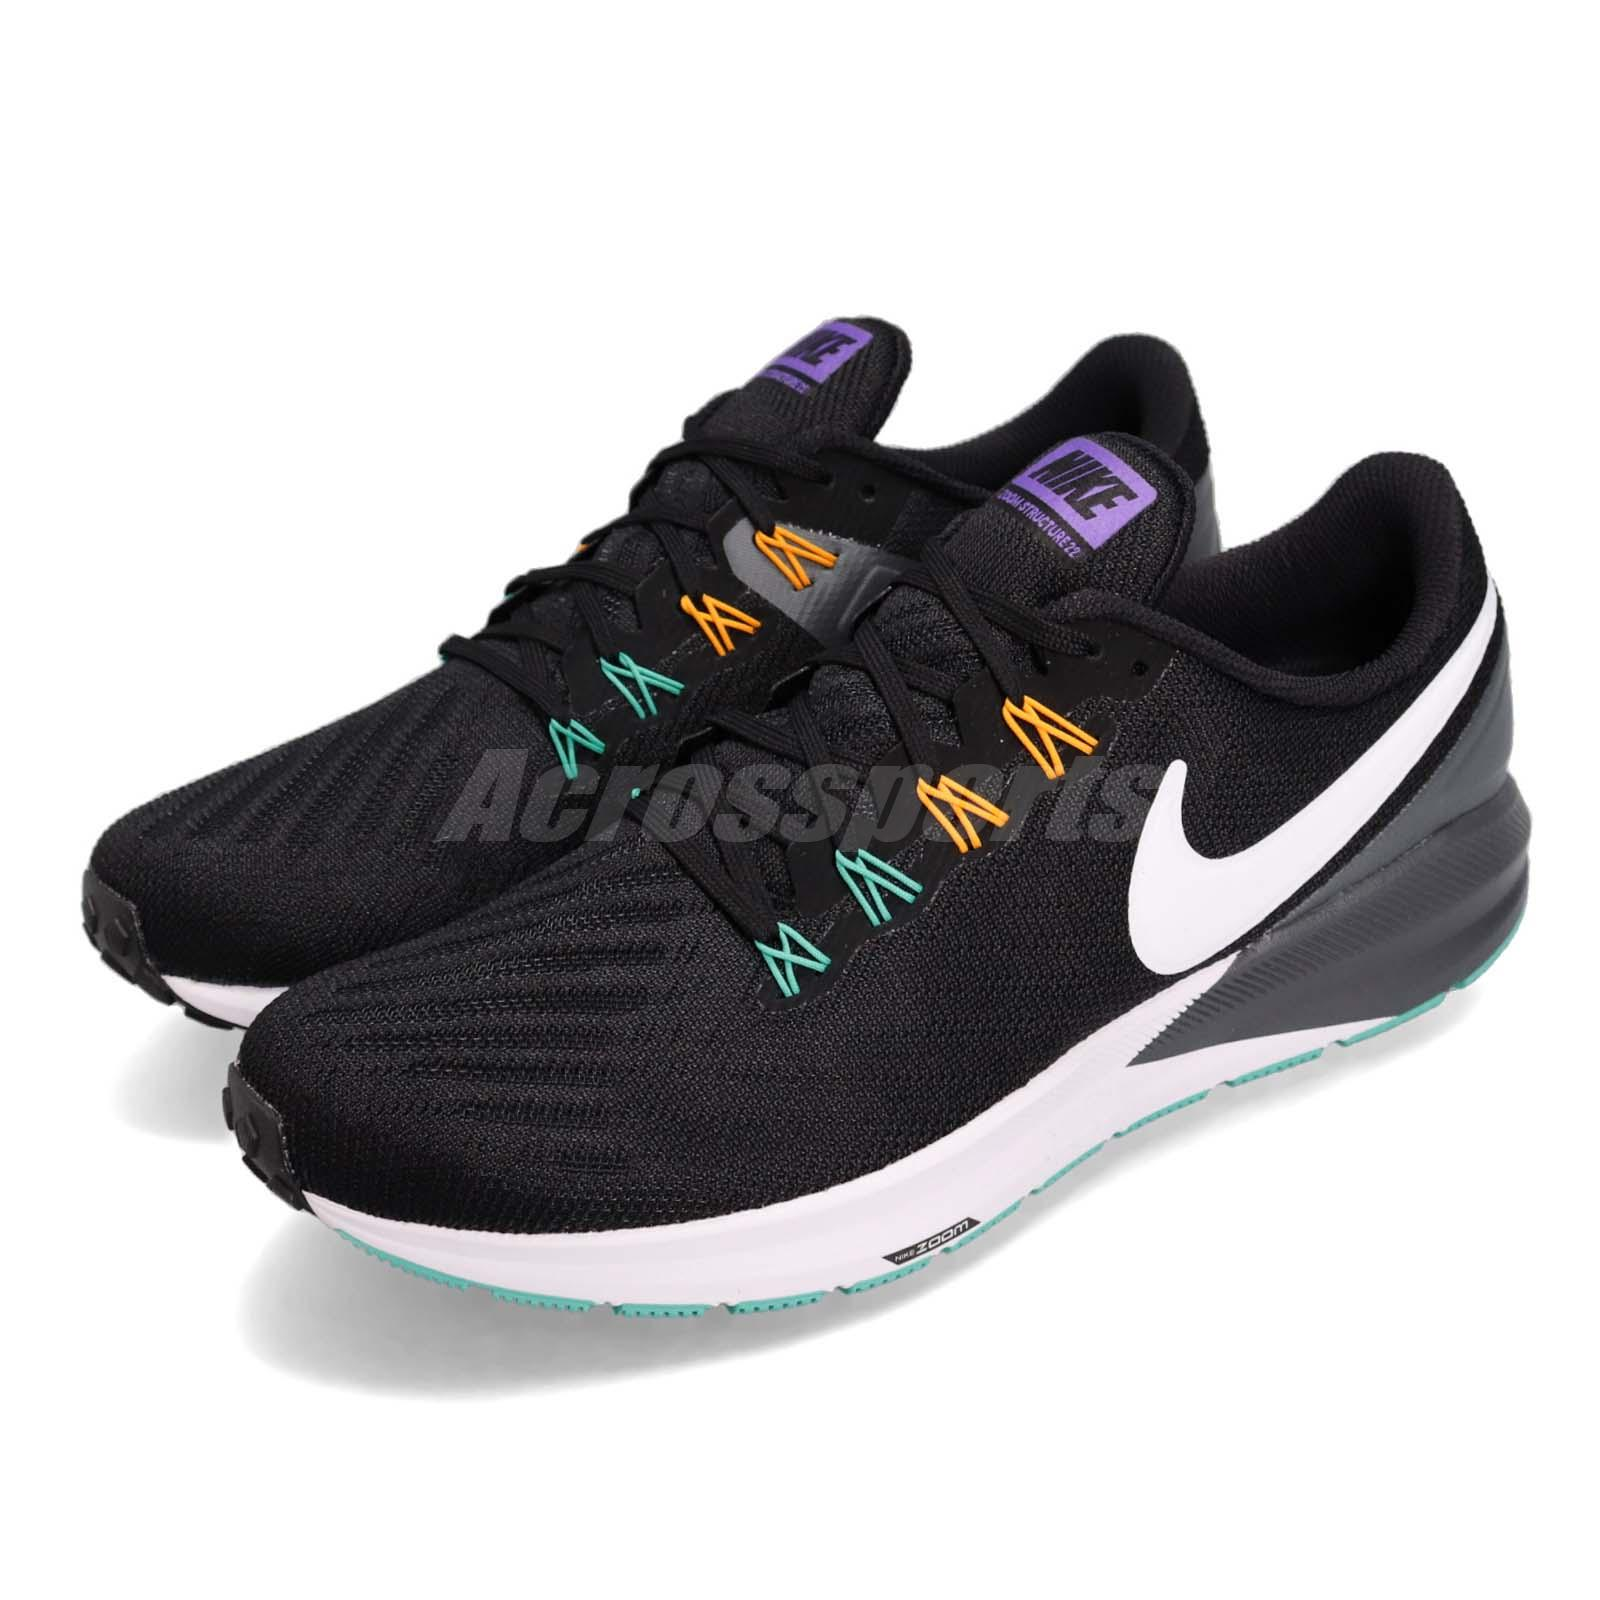 Men/'s Size 9 NEW Nike Zoom Structure 14 Running Cross Training